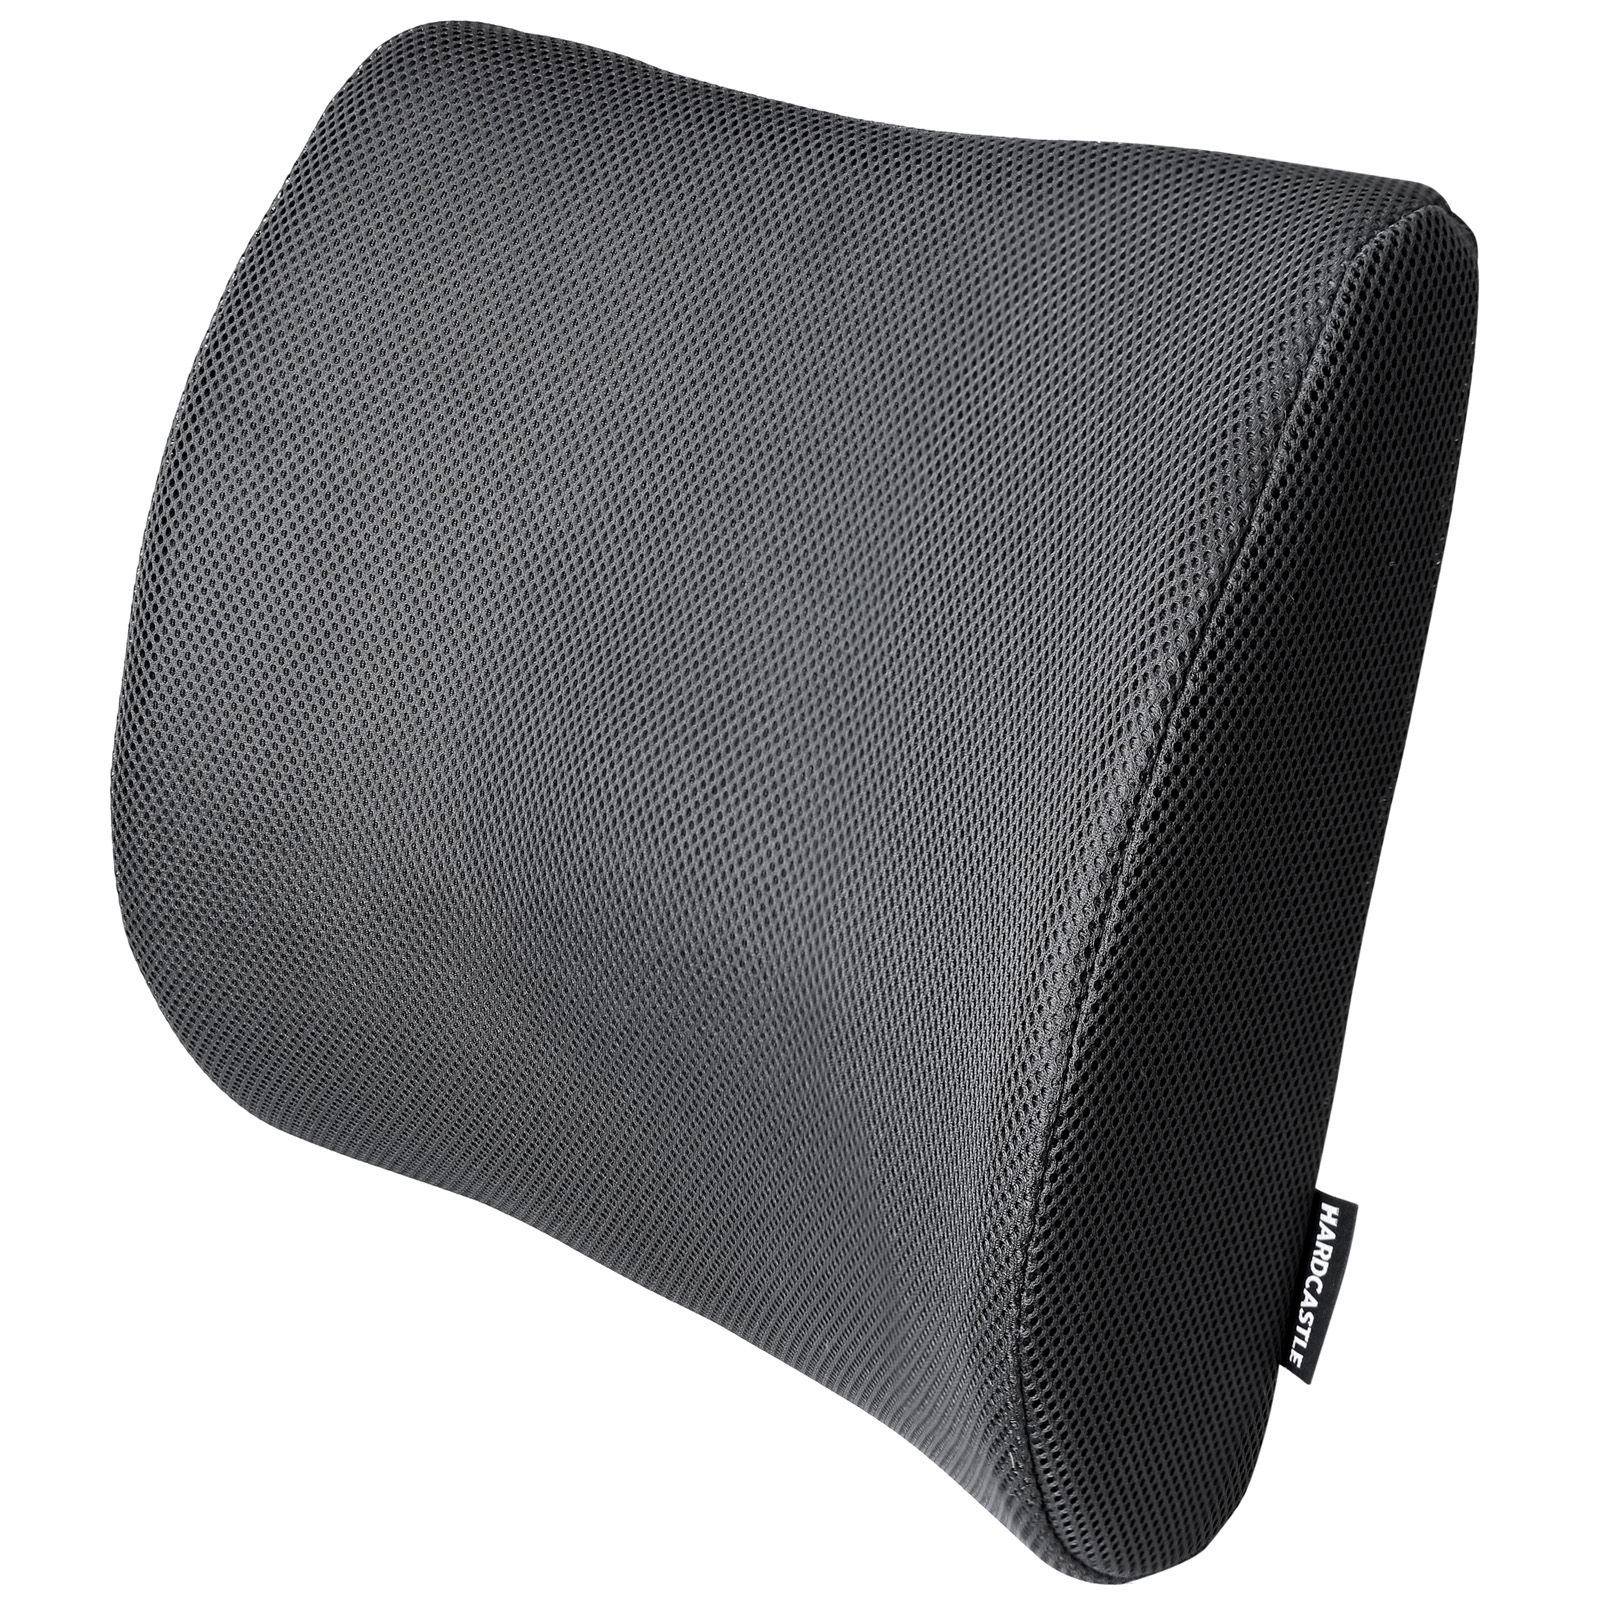 posture support seat cushion game winner chair black memory foam lower back lumbar